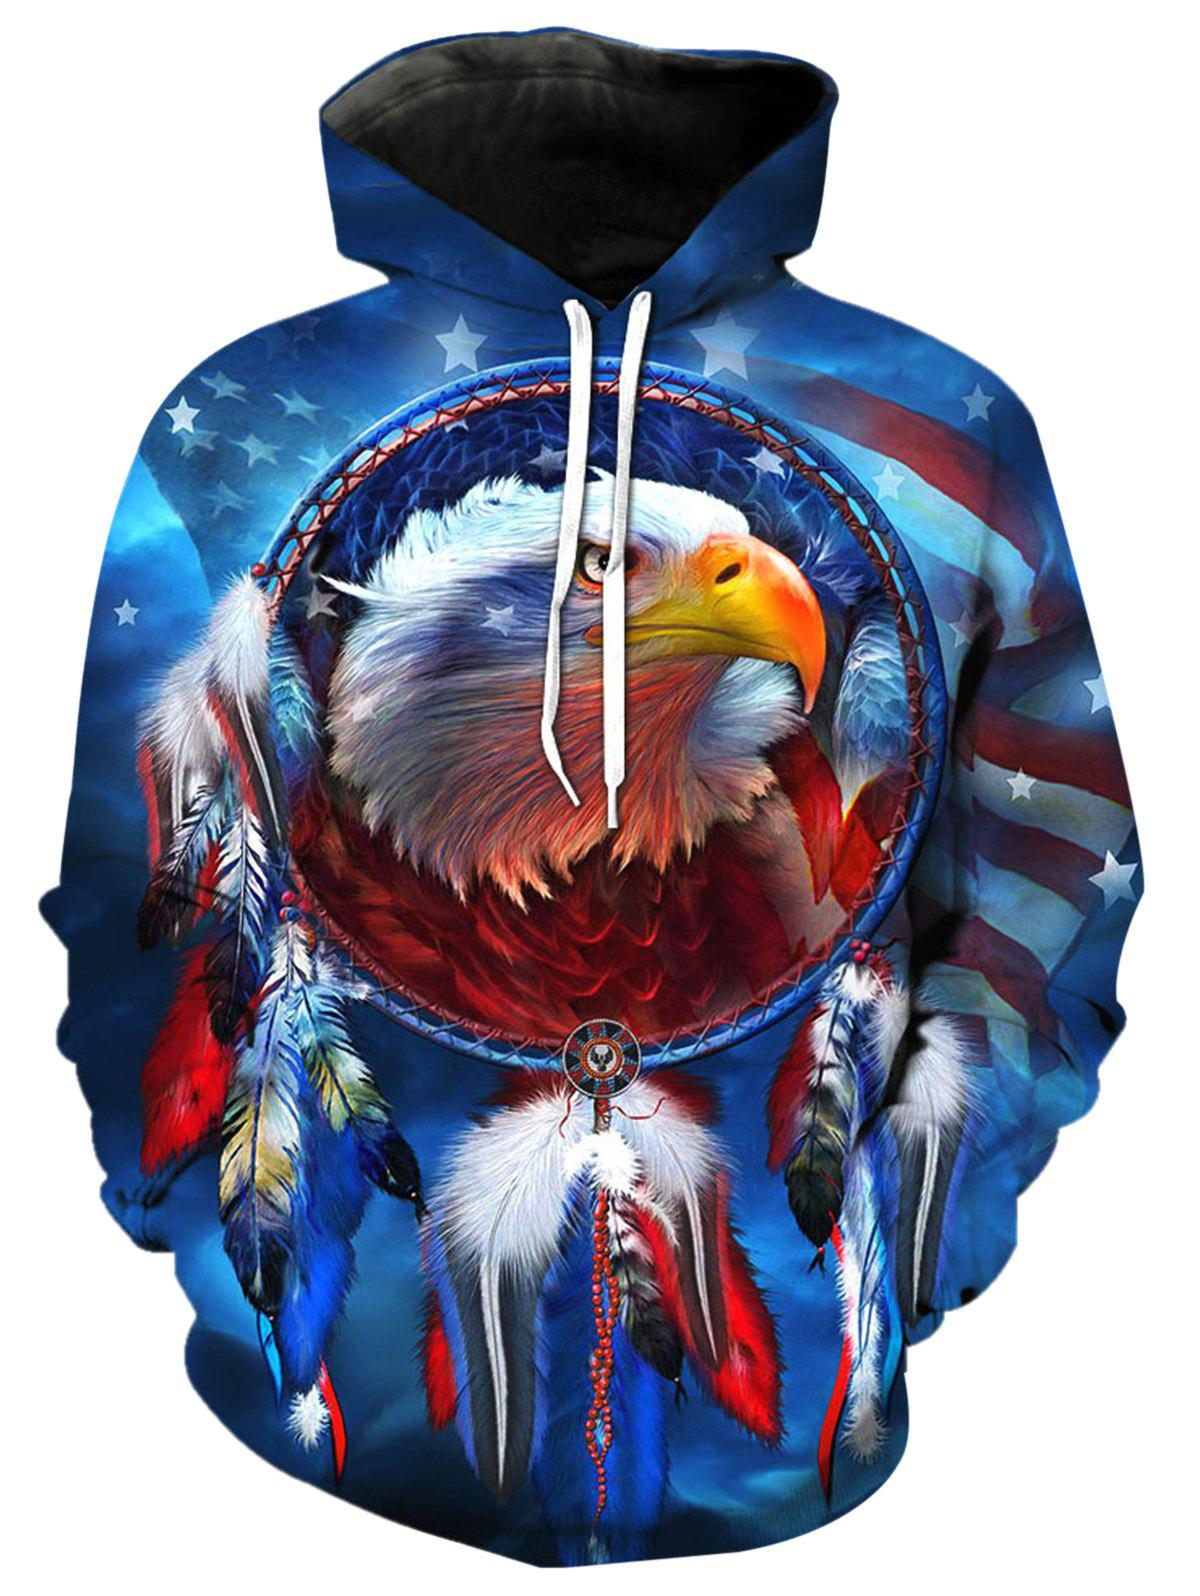 Fancy 3D Digital Eagle Dreamcatcher Print Pullover Hoodie